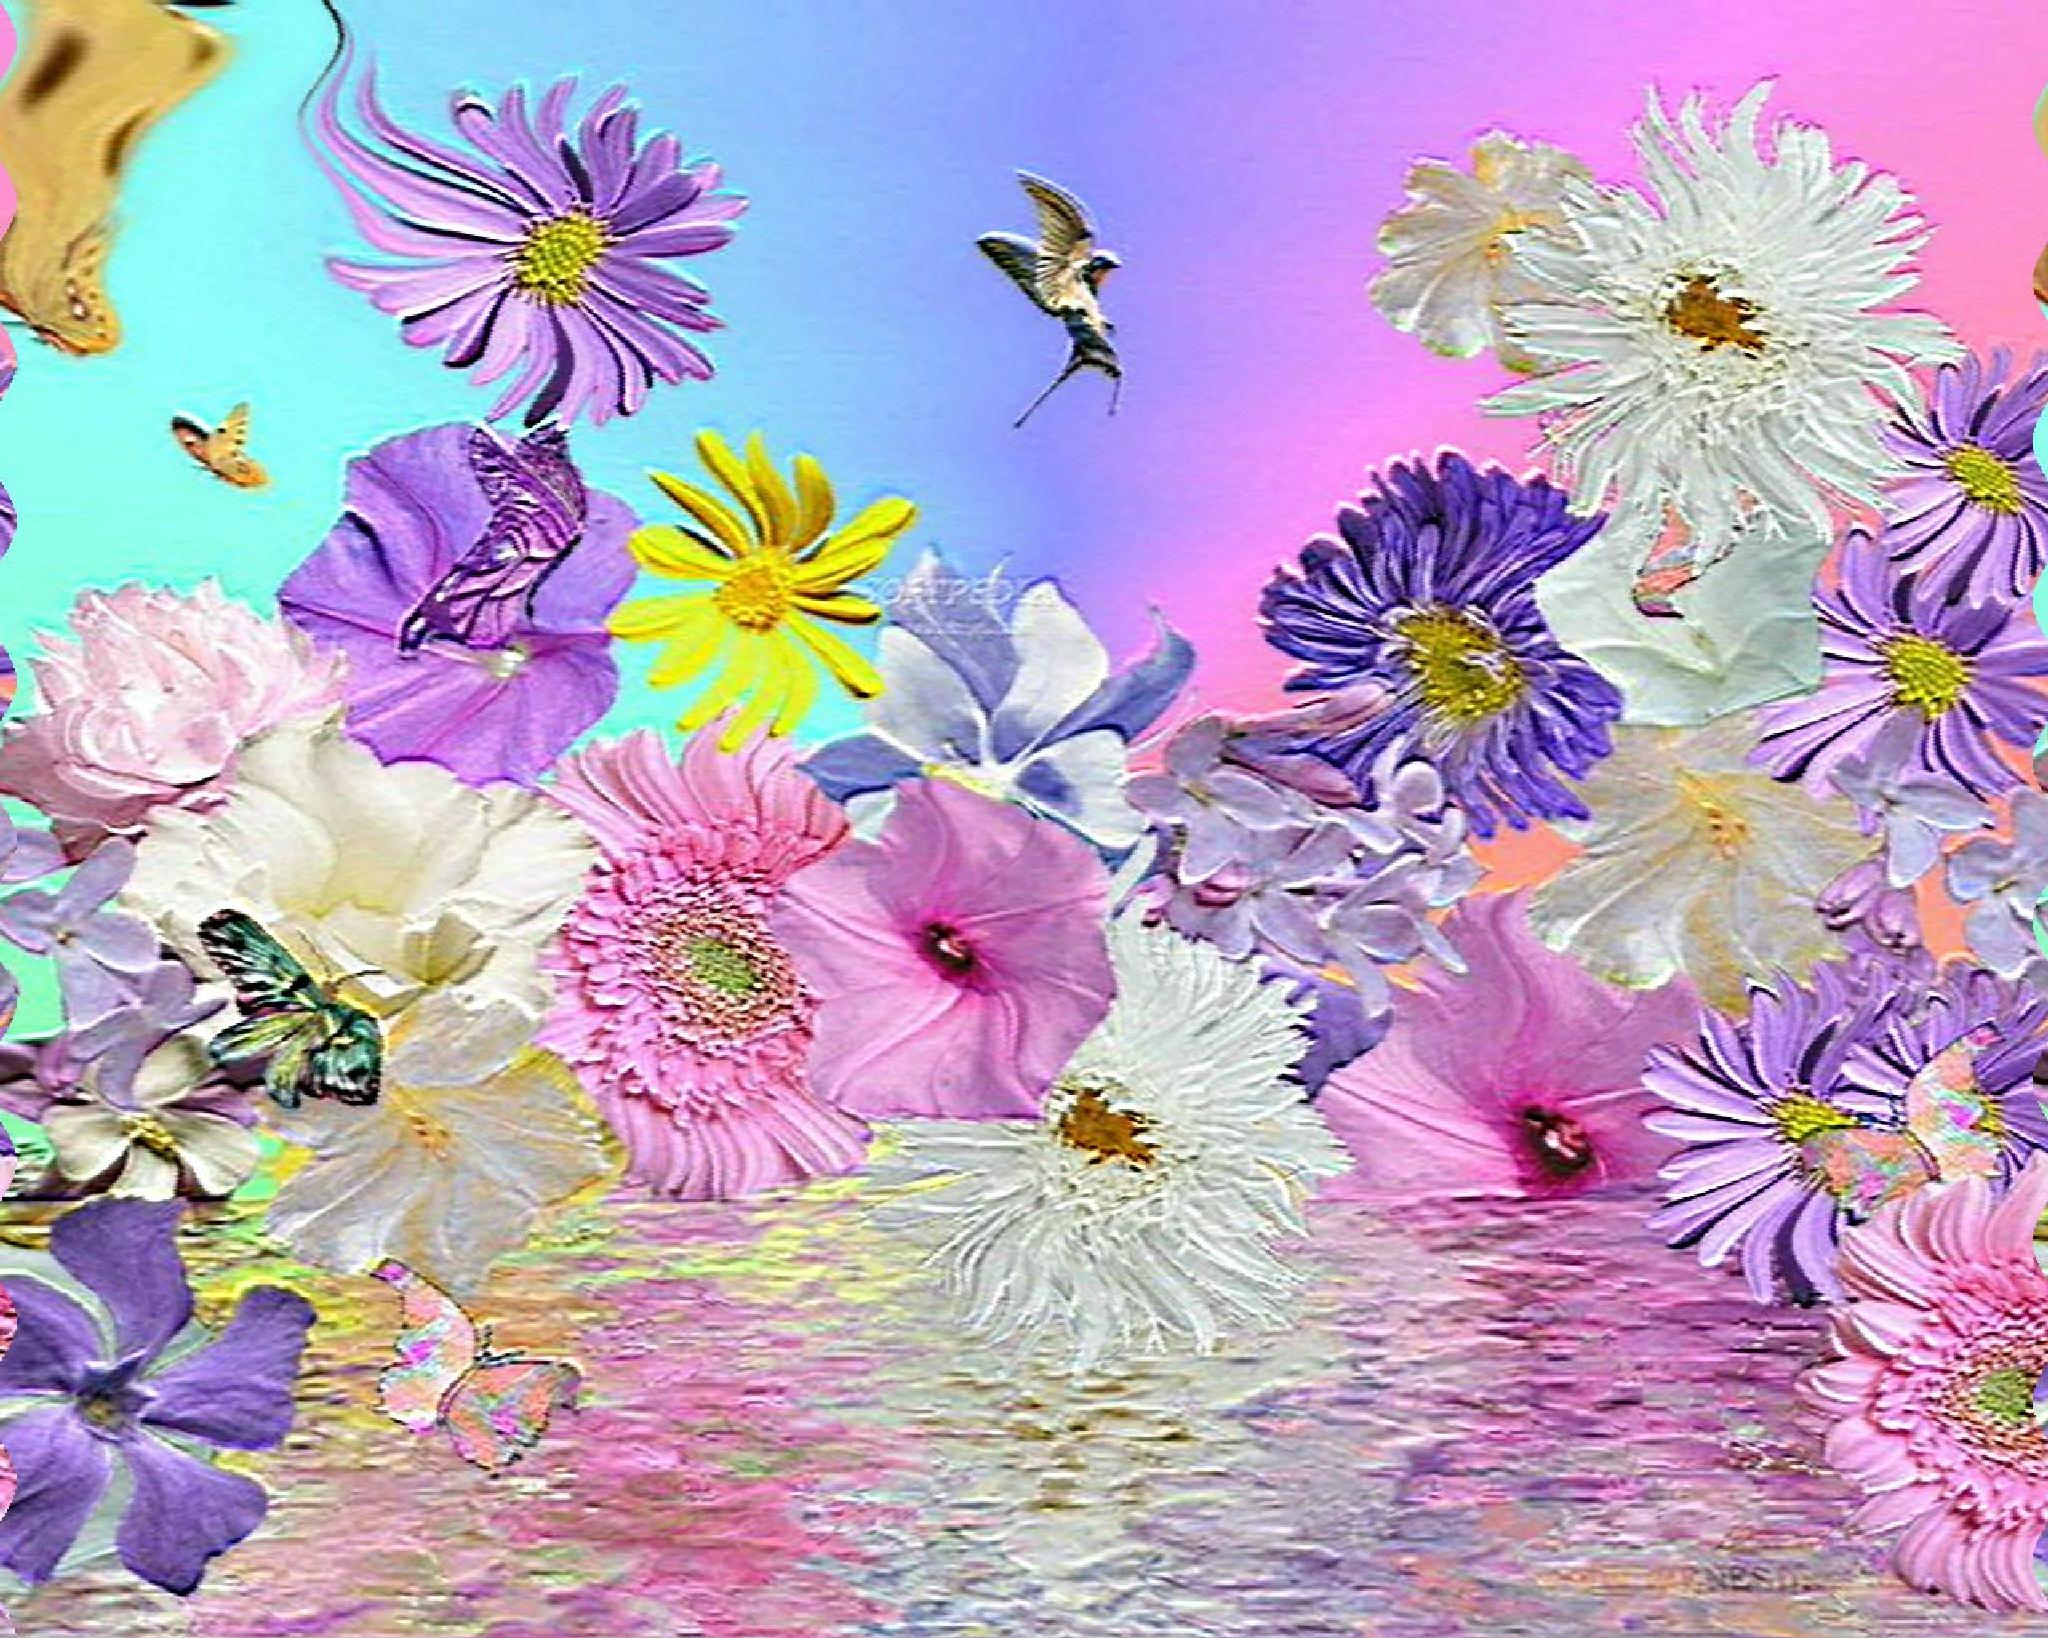 Floral Reflection by mozingo1